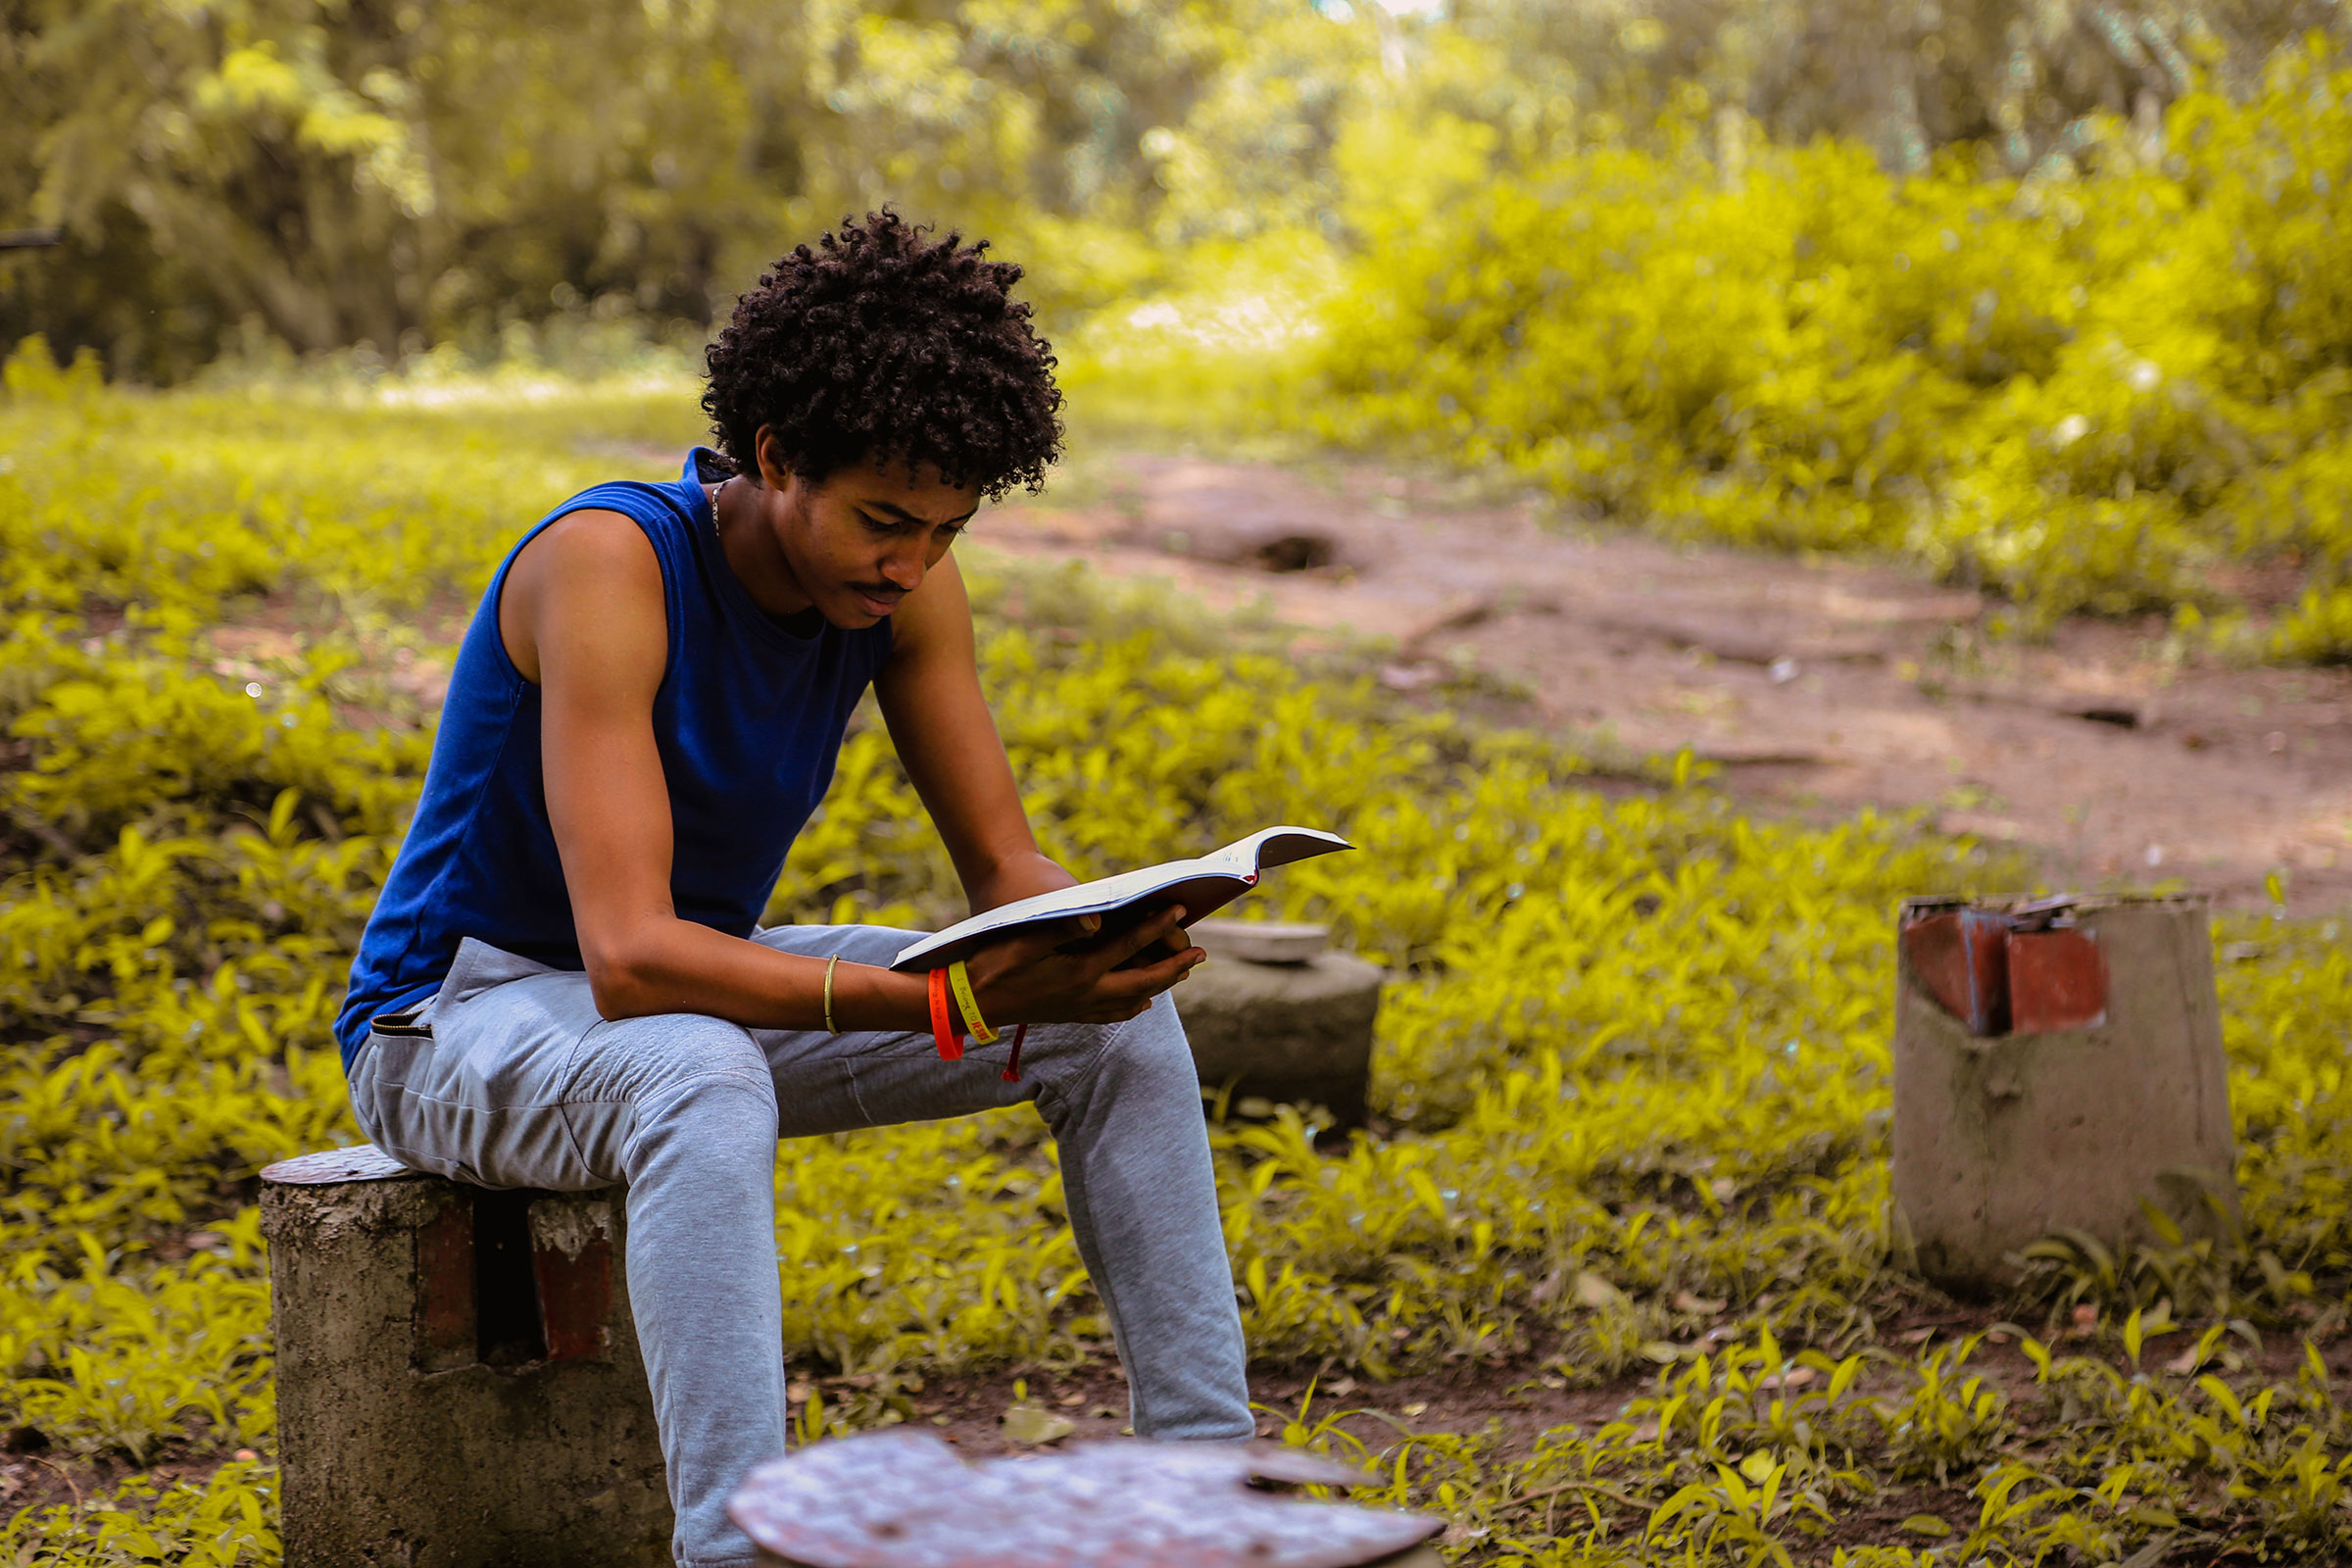 a Black man with short, black hair, and a blue shirt sits on a concrete bence reading a book